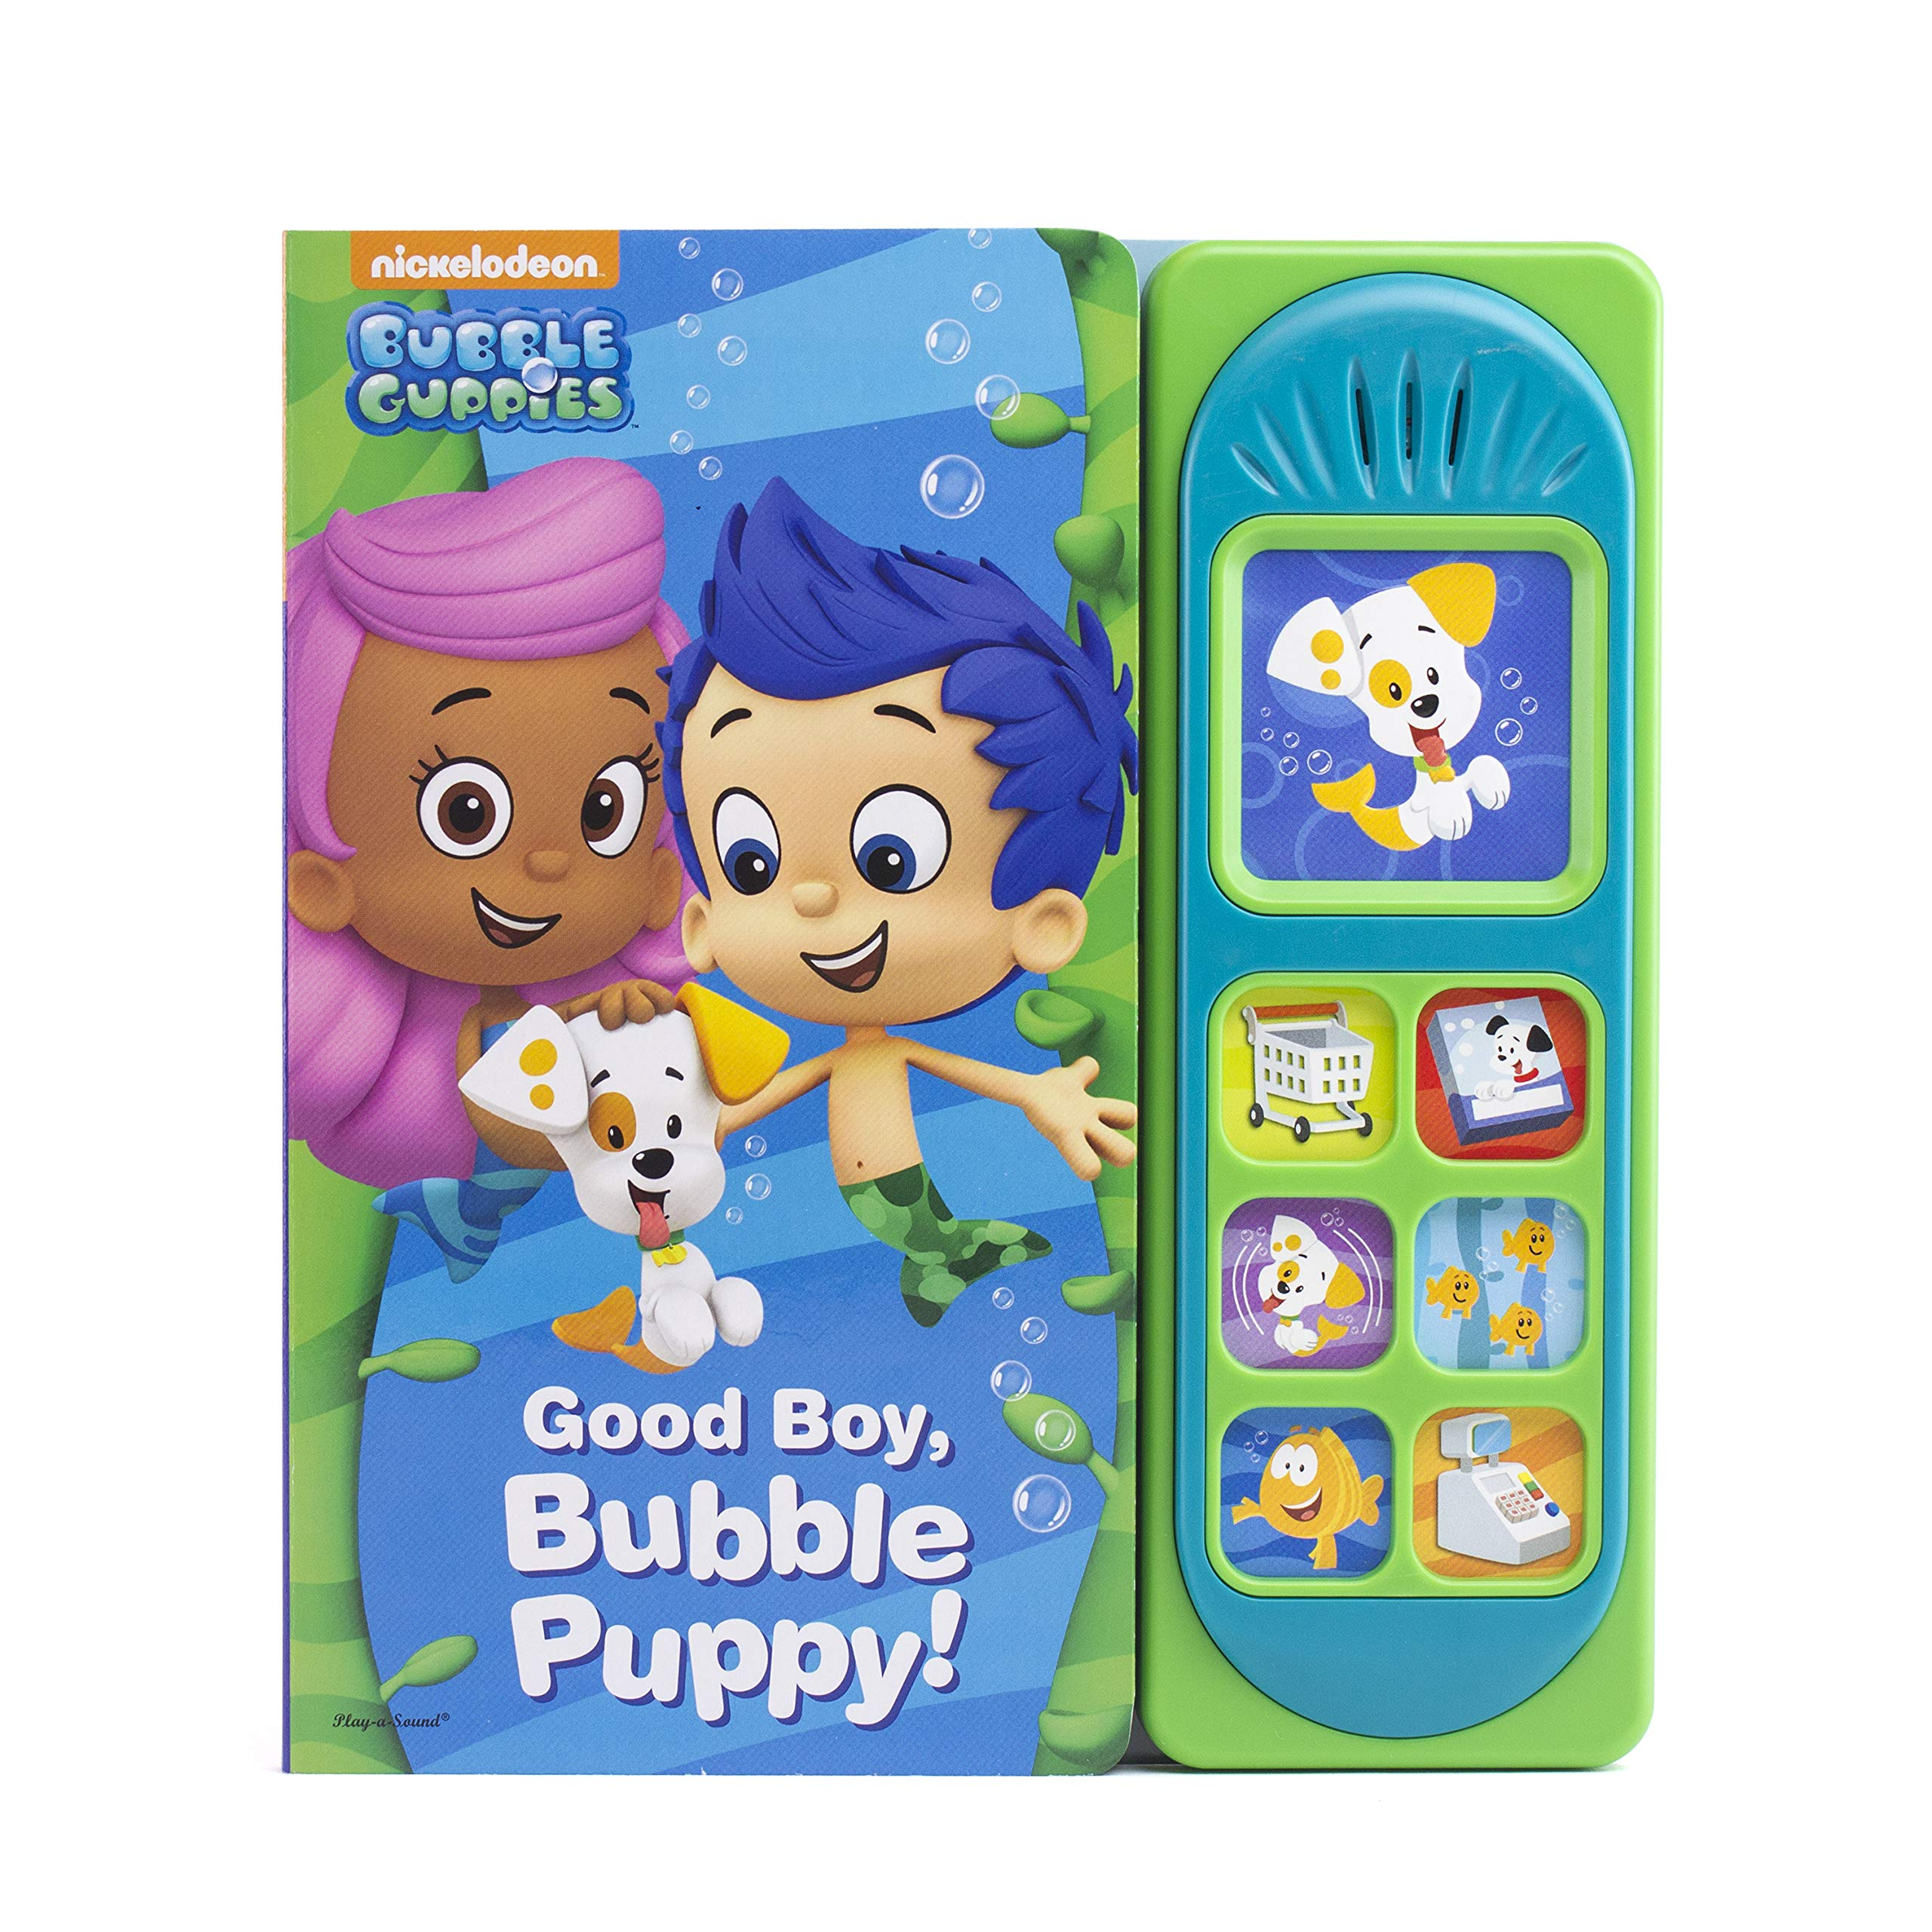 Nickelodeon Bubble Guppies - Good Boy, Bubble Puppy! Sound